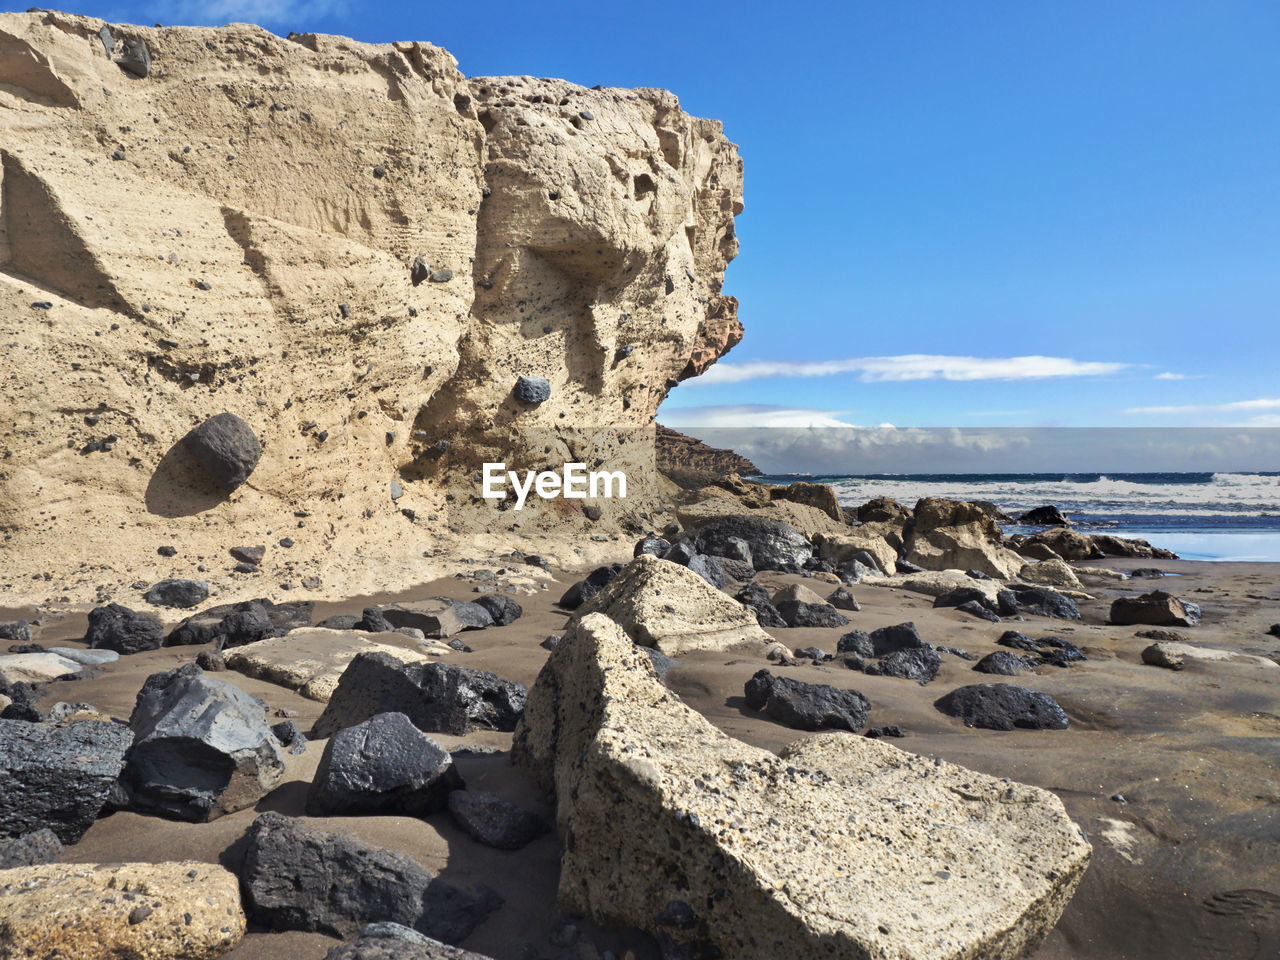 sky, solid, rock, land, sea, rock - object, water, beach, nature, sunlight, beauty in nature, scenics - nature, rock formation, day, tranquility, tranquil scene, no people, non-urban scene, outdoors, eroded